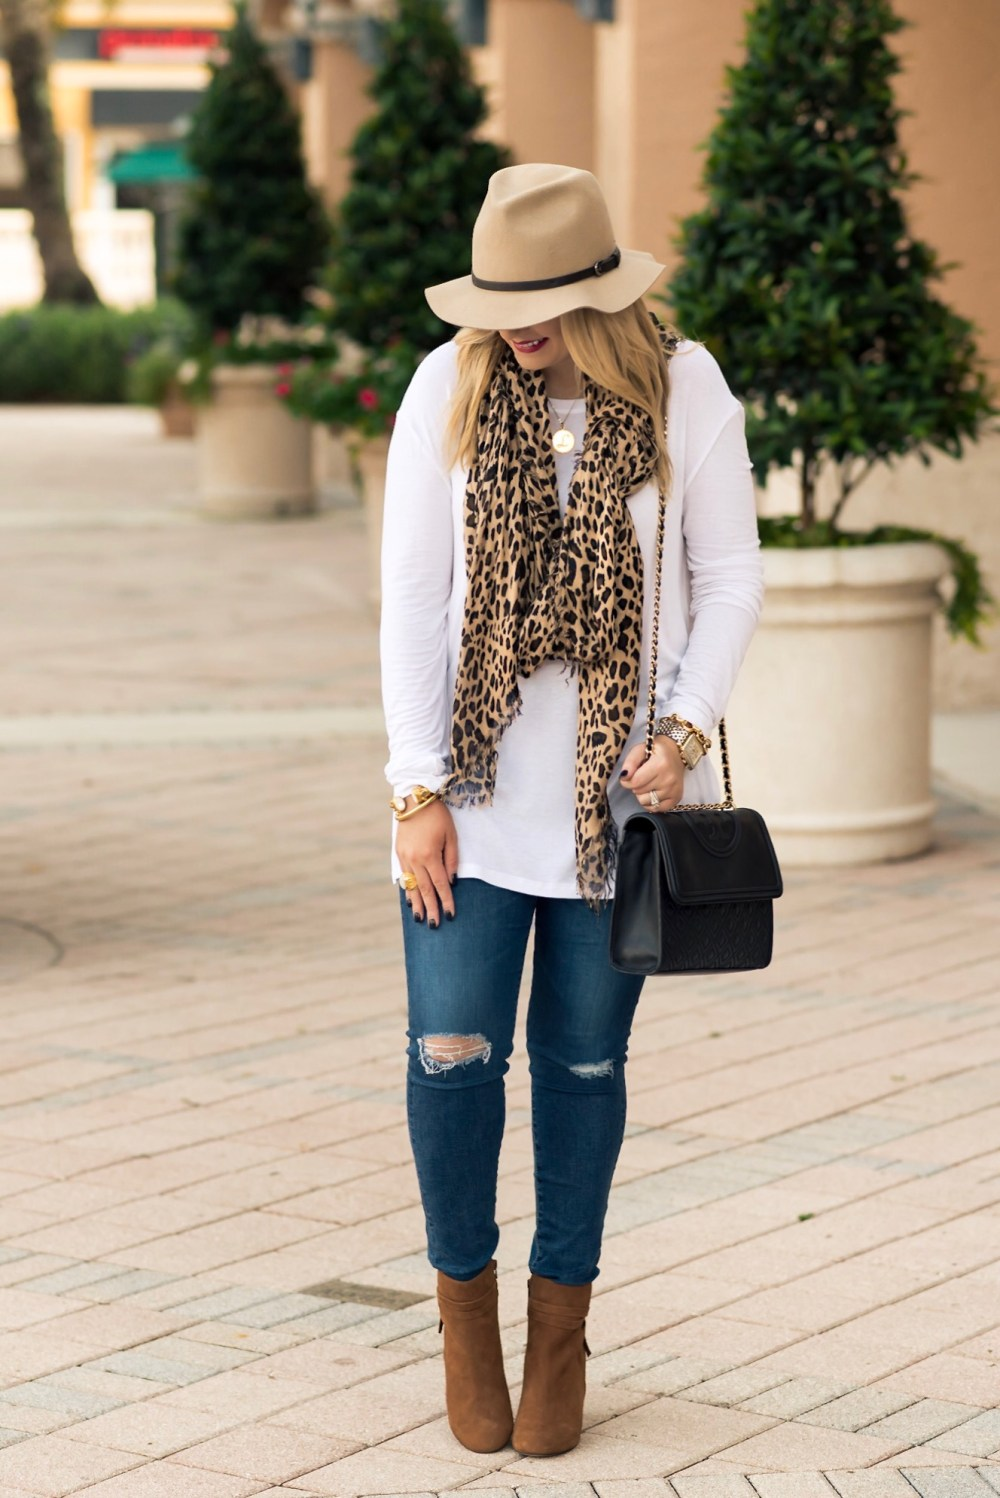 fall-outfit-inspiration-sole-leopard-print-fancy-things